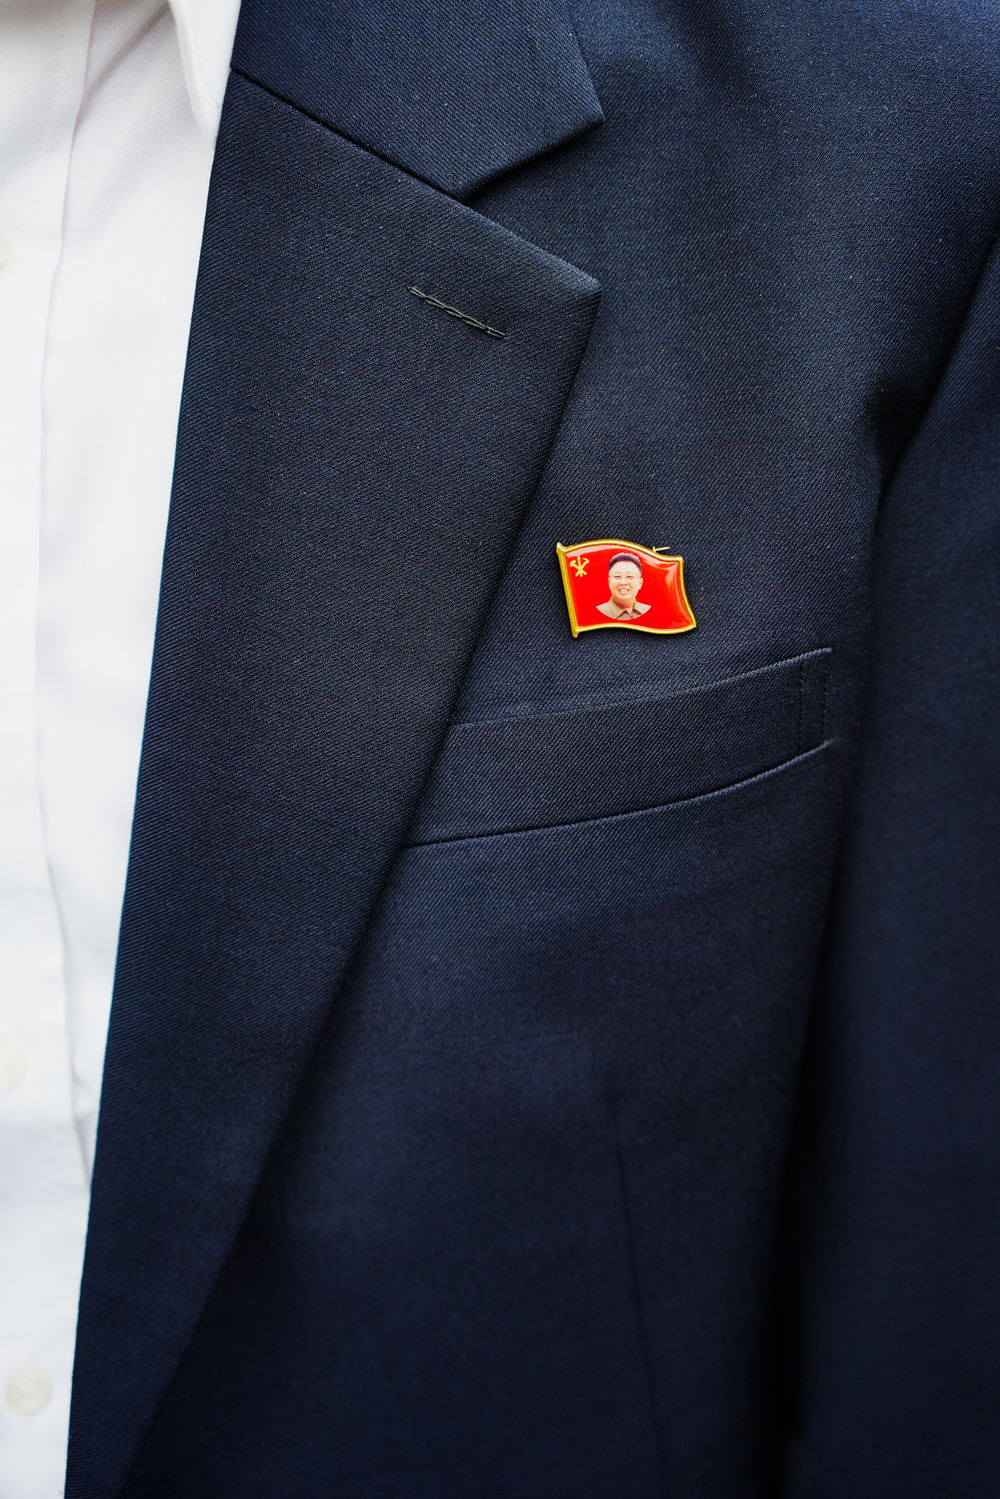 Pins of the leaders can not be bought but only earned in this country.